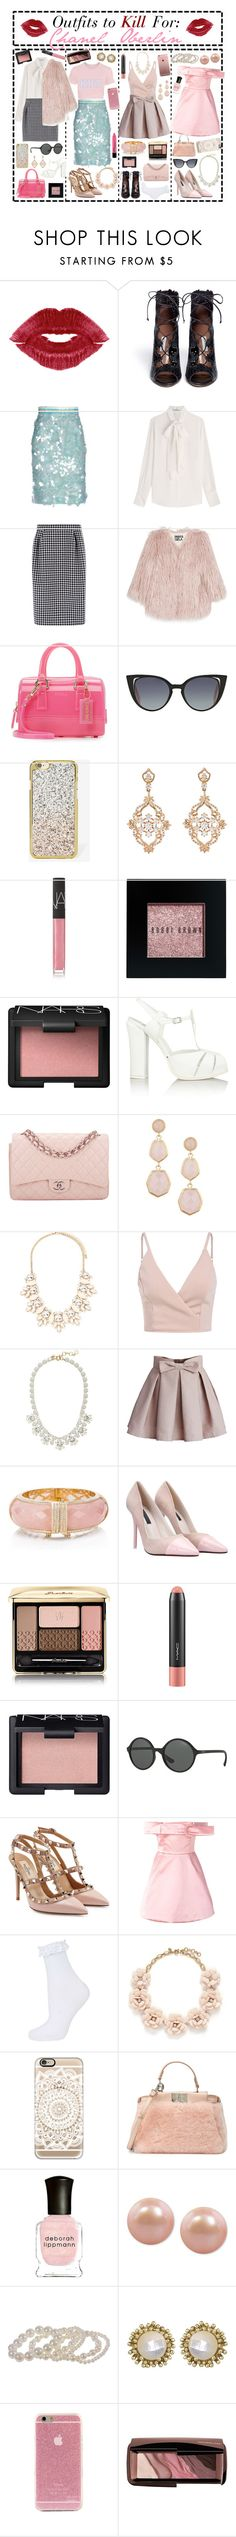 """- ̗̀ Outfits to Kill For: Chanel Oberlin  ̖́-"" by i-get-a-little-bit-breathless ❤ liked on Polyvore featuring Tabitha Simmons, Daizy Shely, Valentino, MaxMara, Pam & Gela, Furla, Fendi, Skinnydip, Sara Weinstock and NARS Cosmetics"